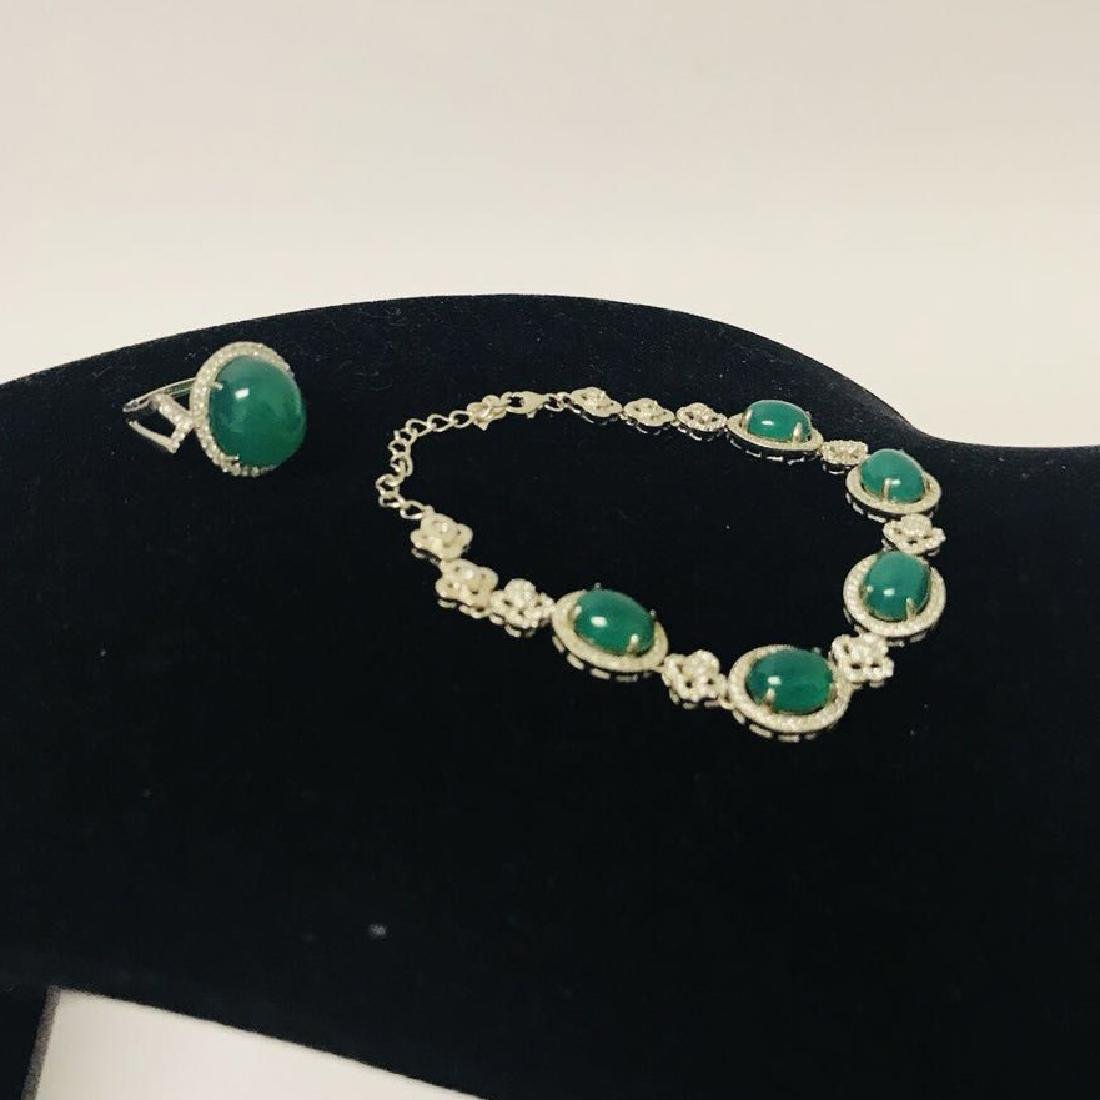 Green Agate Bracelet and Ring